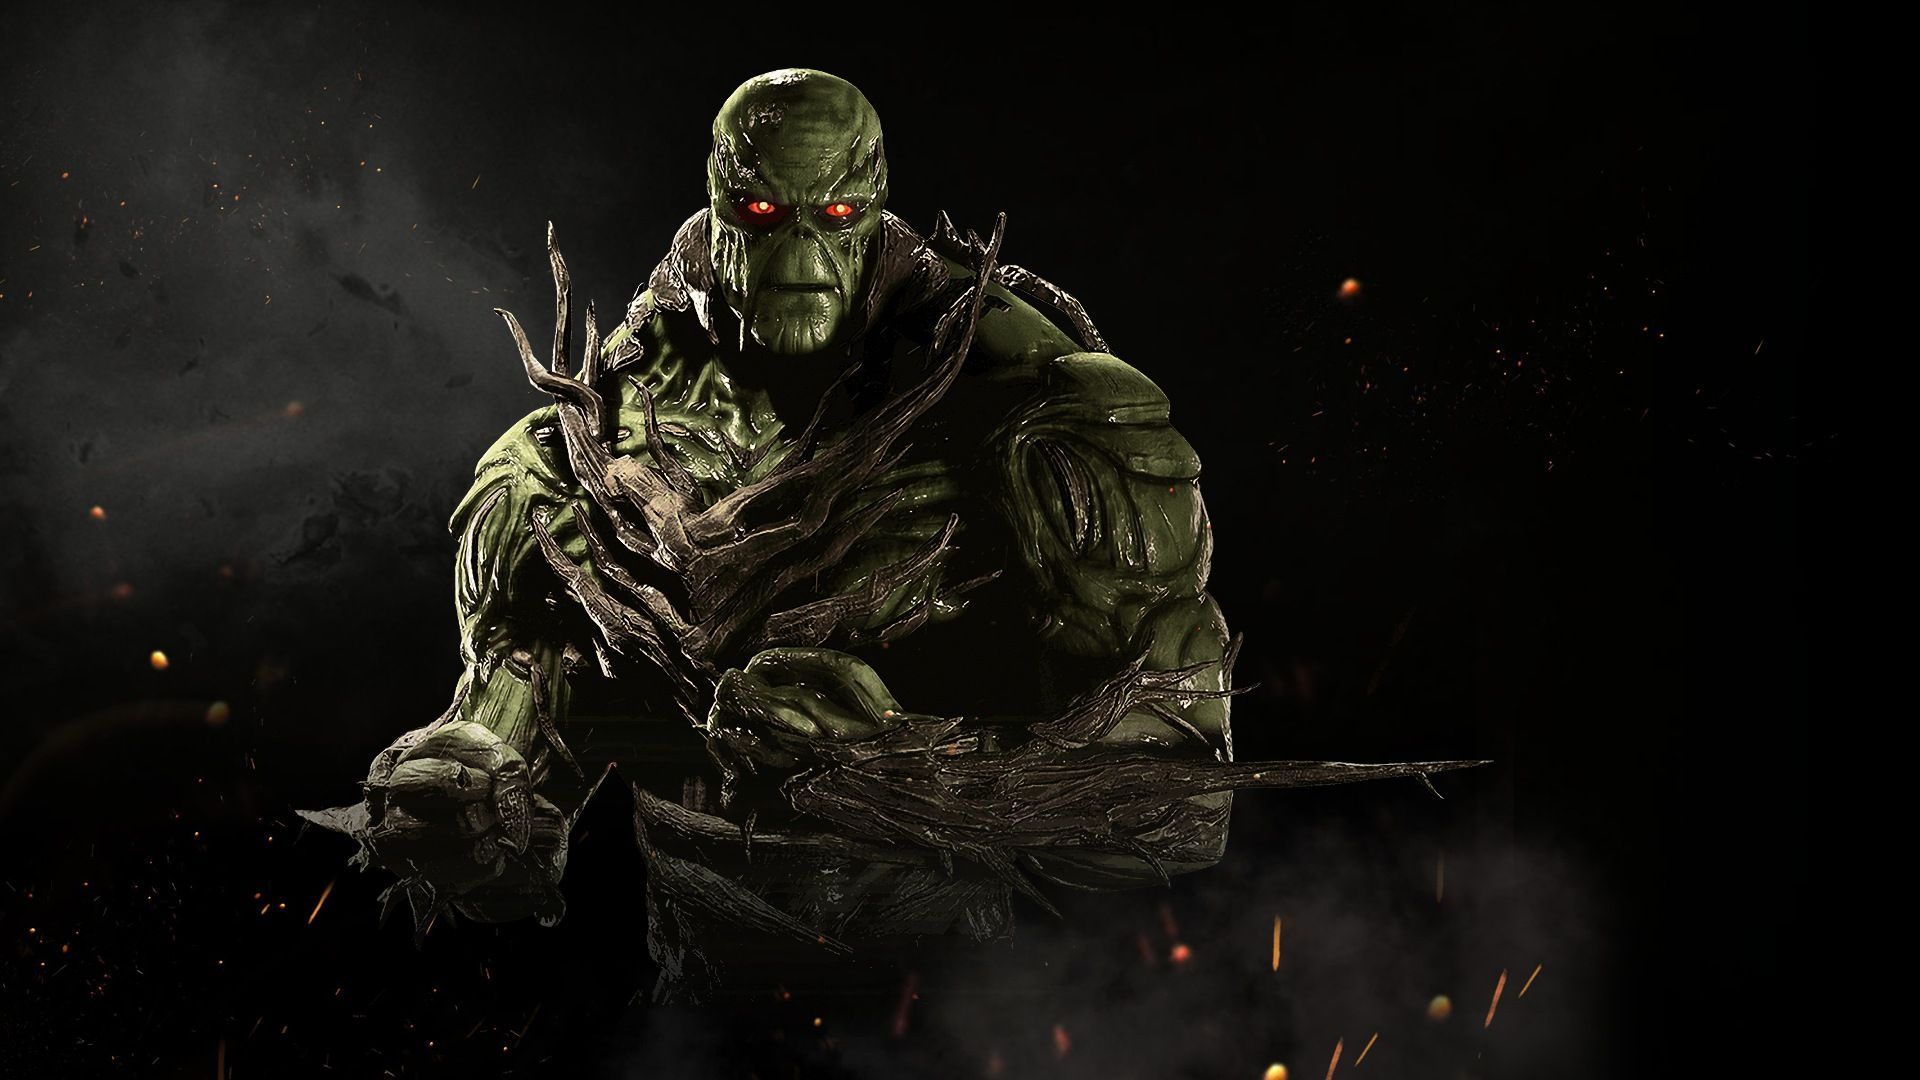 Awesome Swamp Thing Injustice 2 Game 1920x1080 Check More